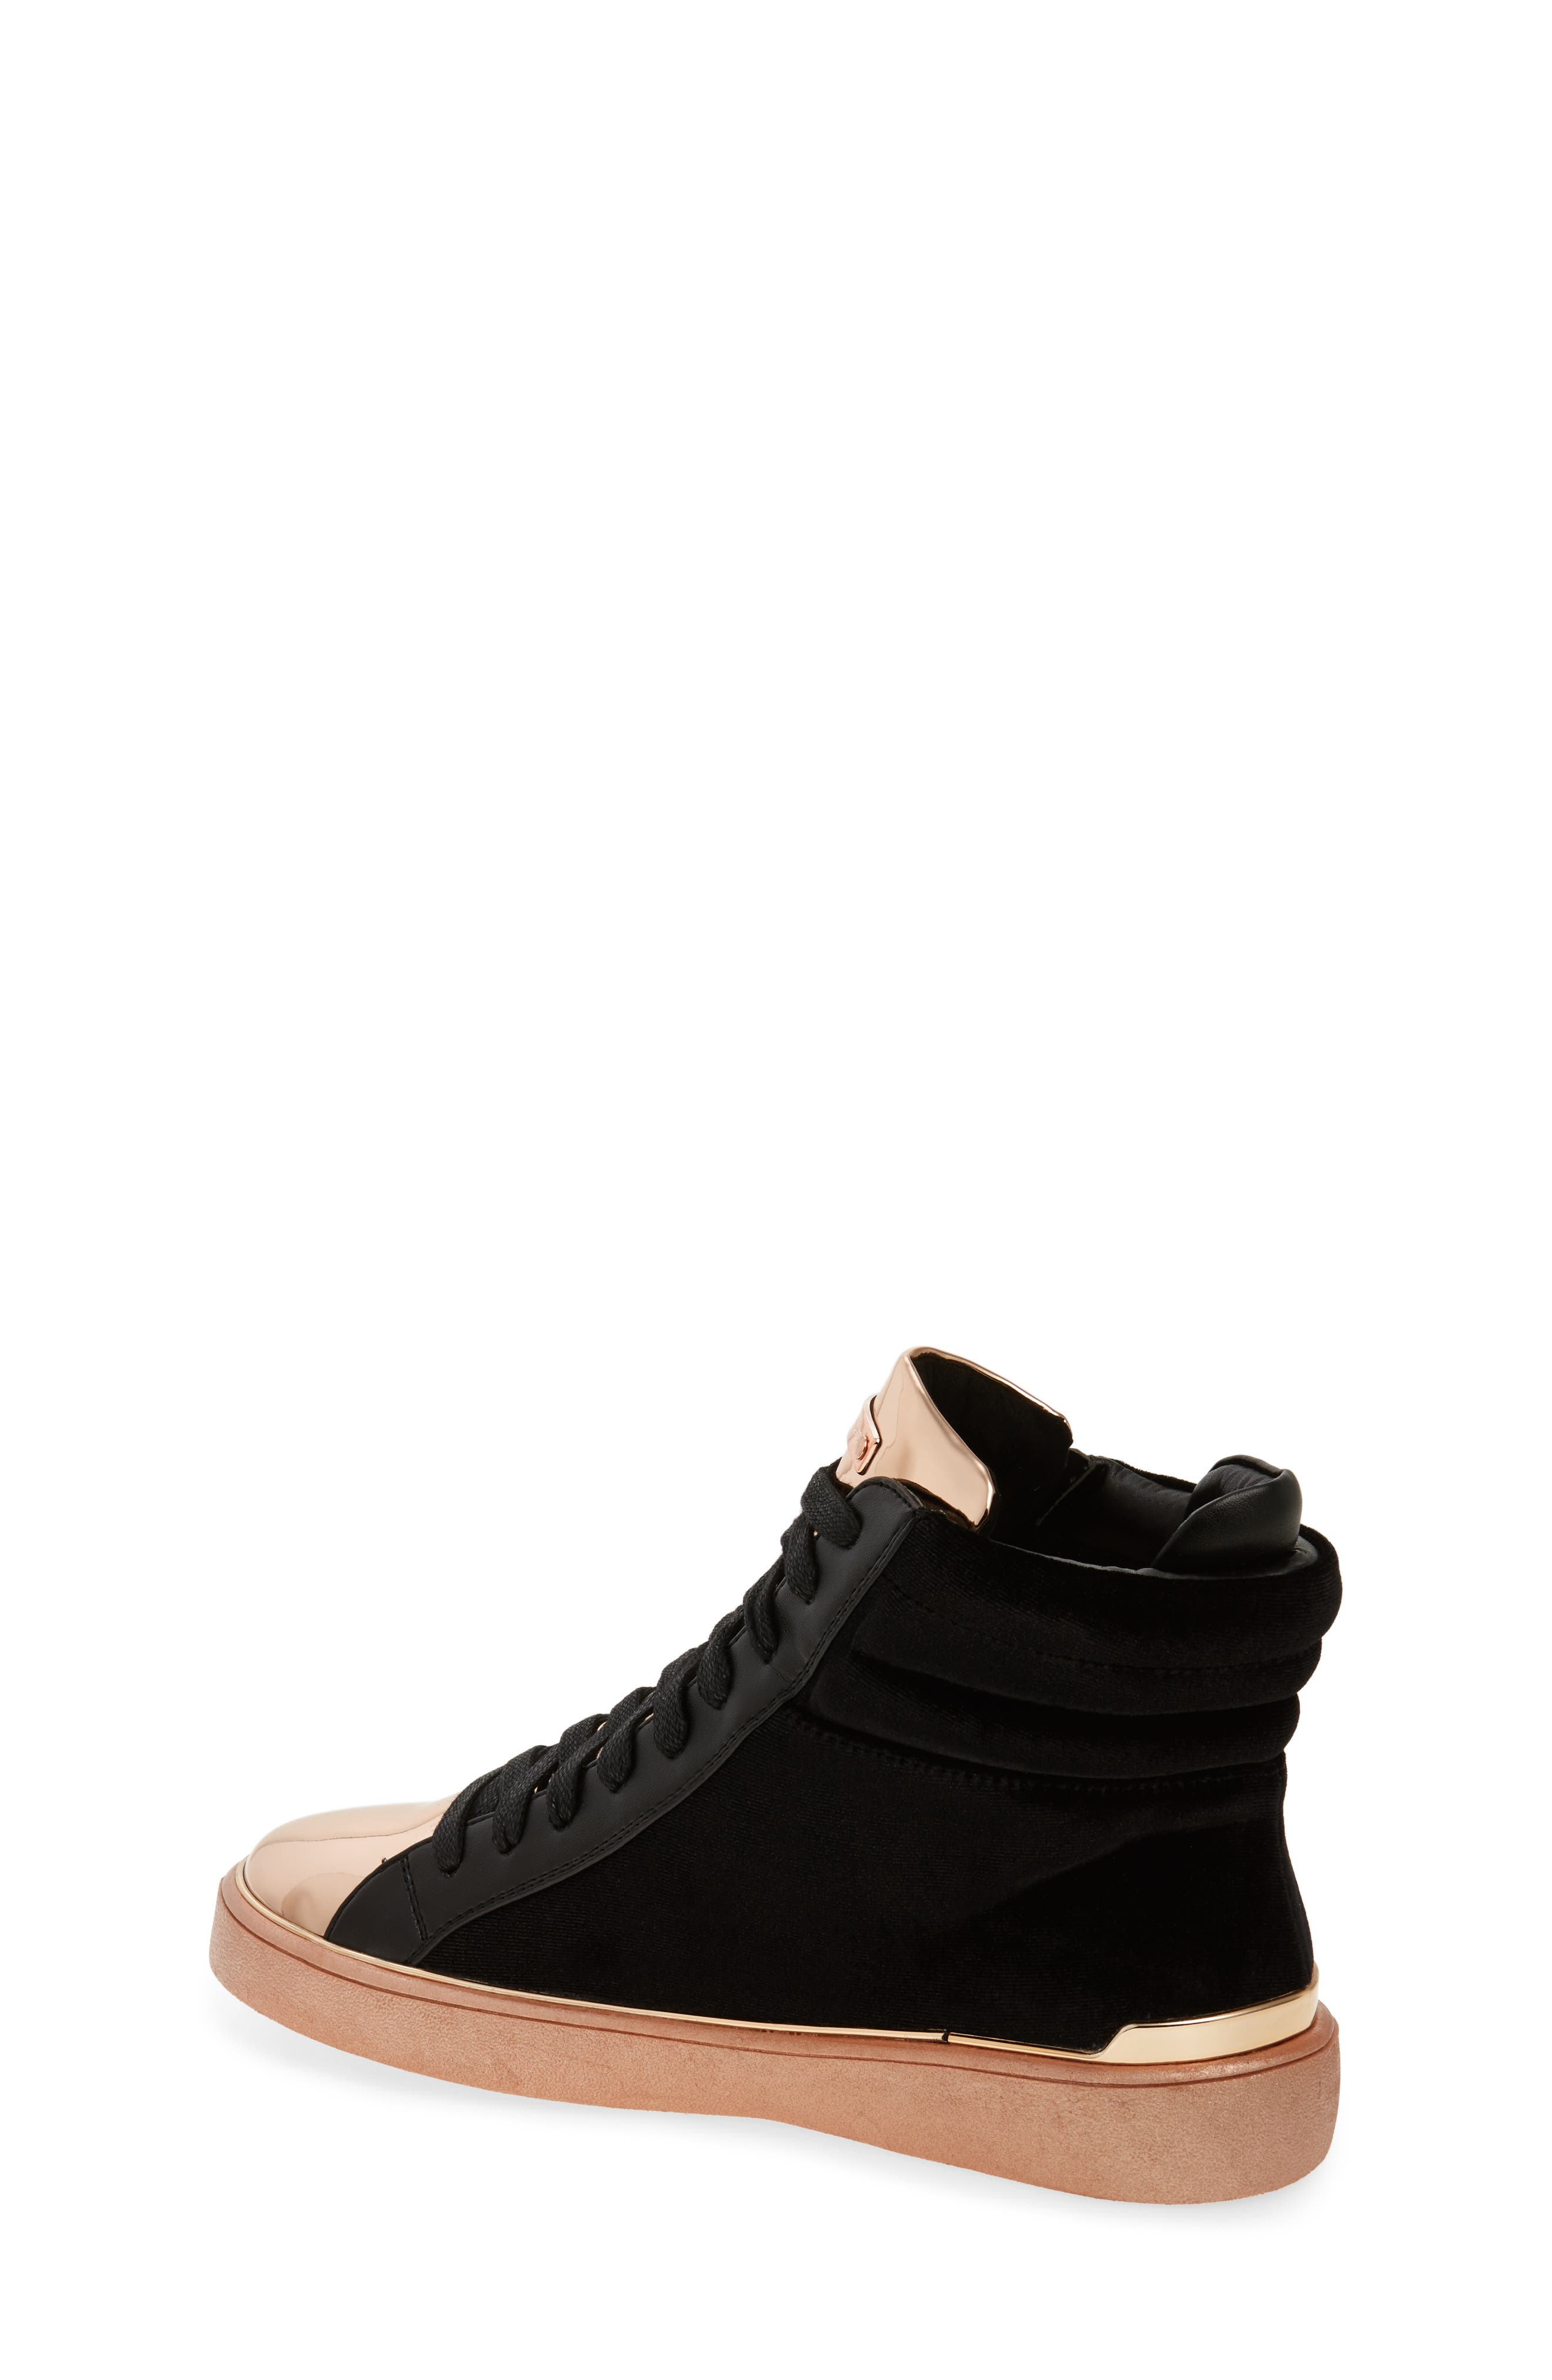 Ivy Blue High Top Sneaker,                             Alternate thumbnail 3, color,